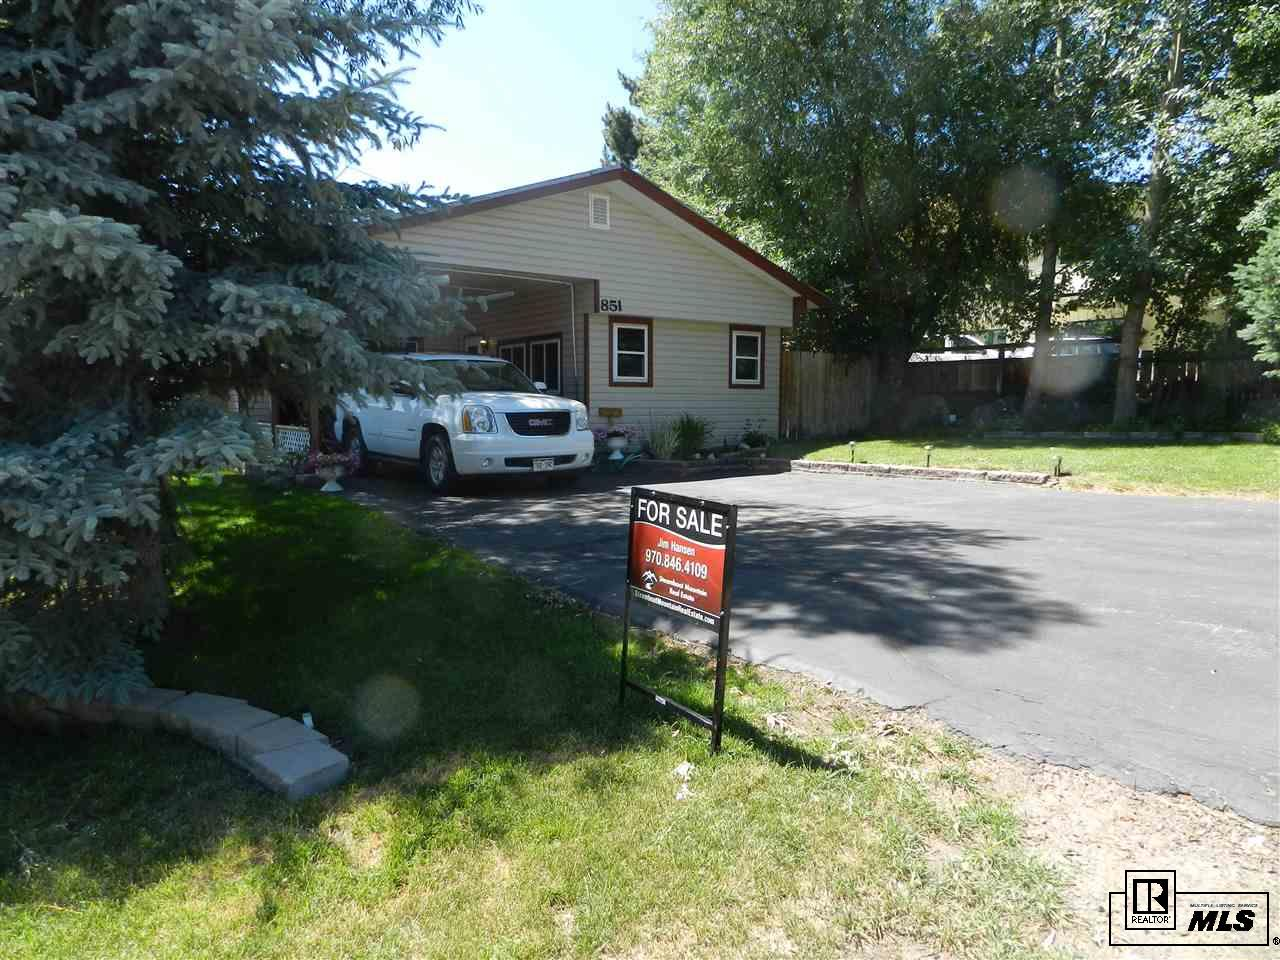 851 Broad St, Steamboat Springs, CO 80487